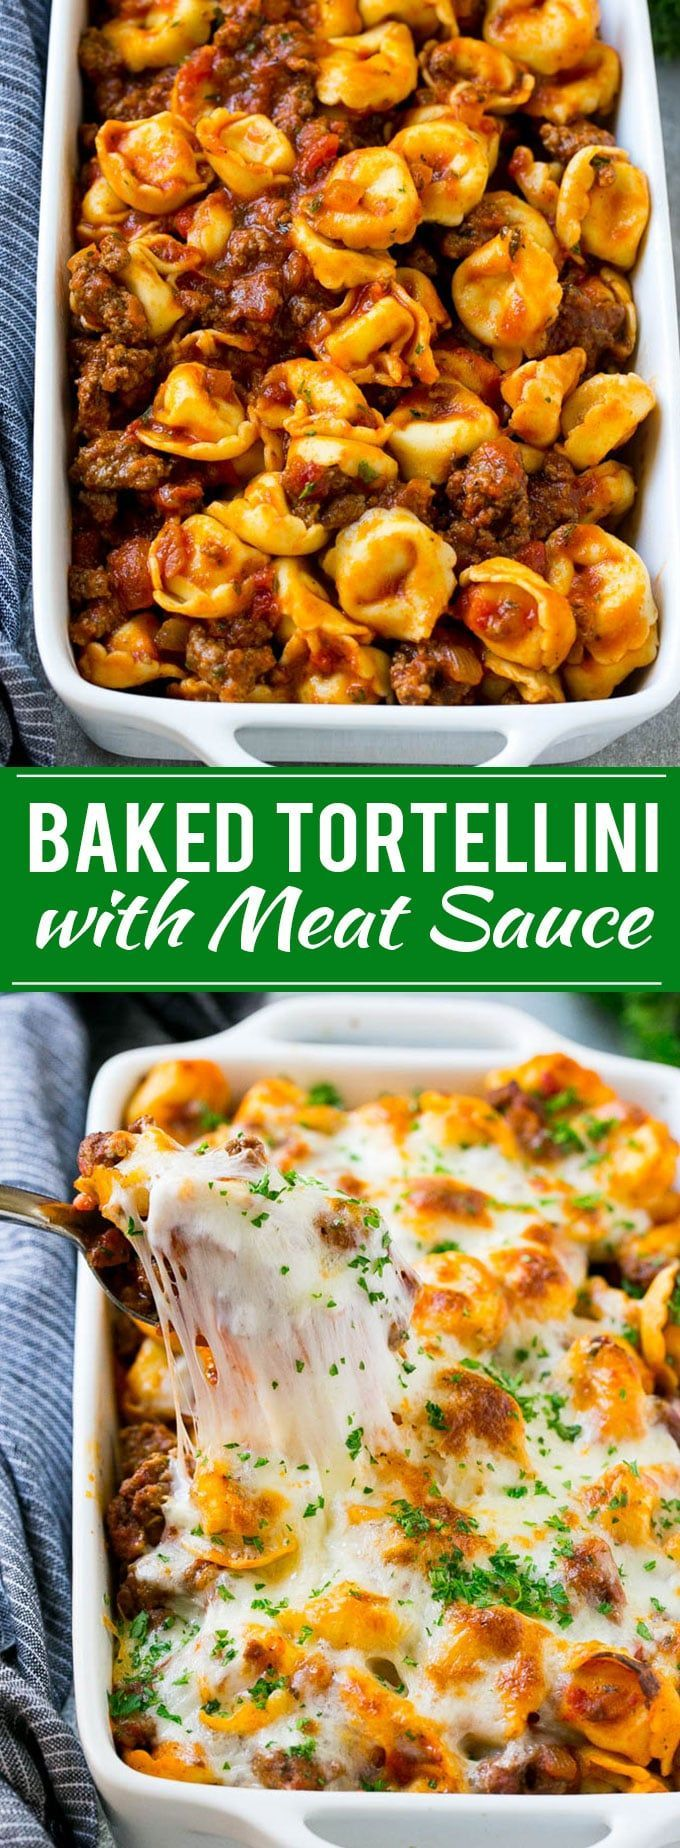 Baked Tortellin with Meat Sauce Recipe   Cheese Tortellini   Tortellini Recipe   Baked Pasta Recipe